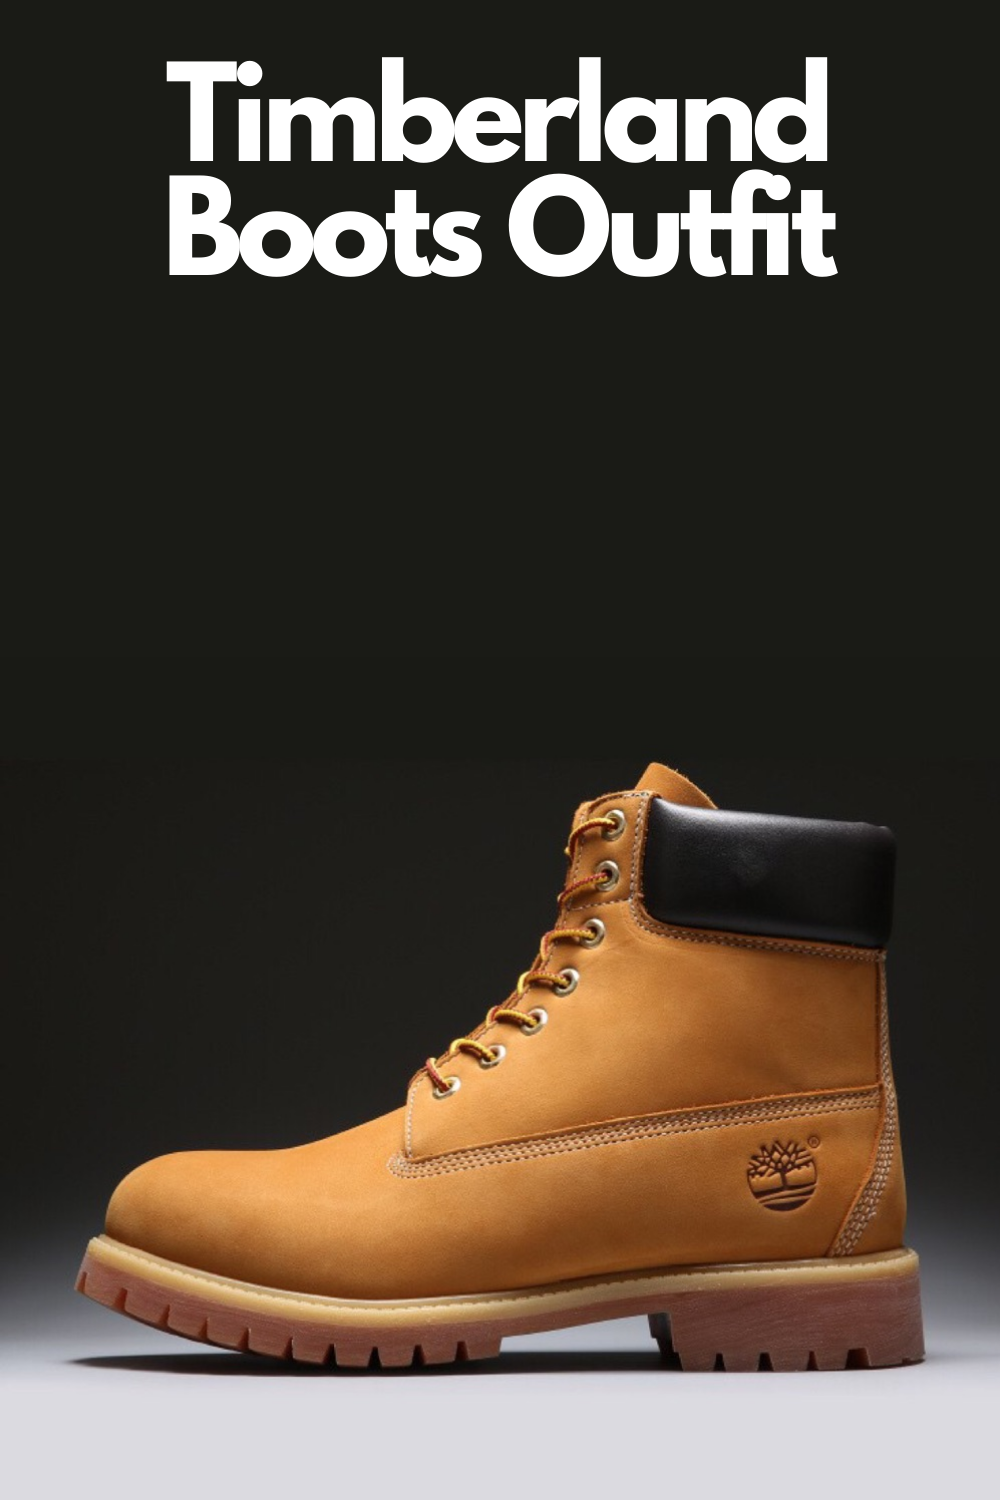 The 10 Best Ways To Wear Timberland Boots How To Wear Timberlands Timberland Boots Timberland Boots Outfit